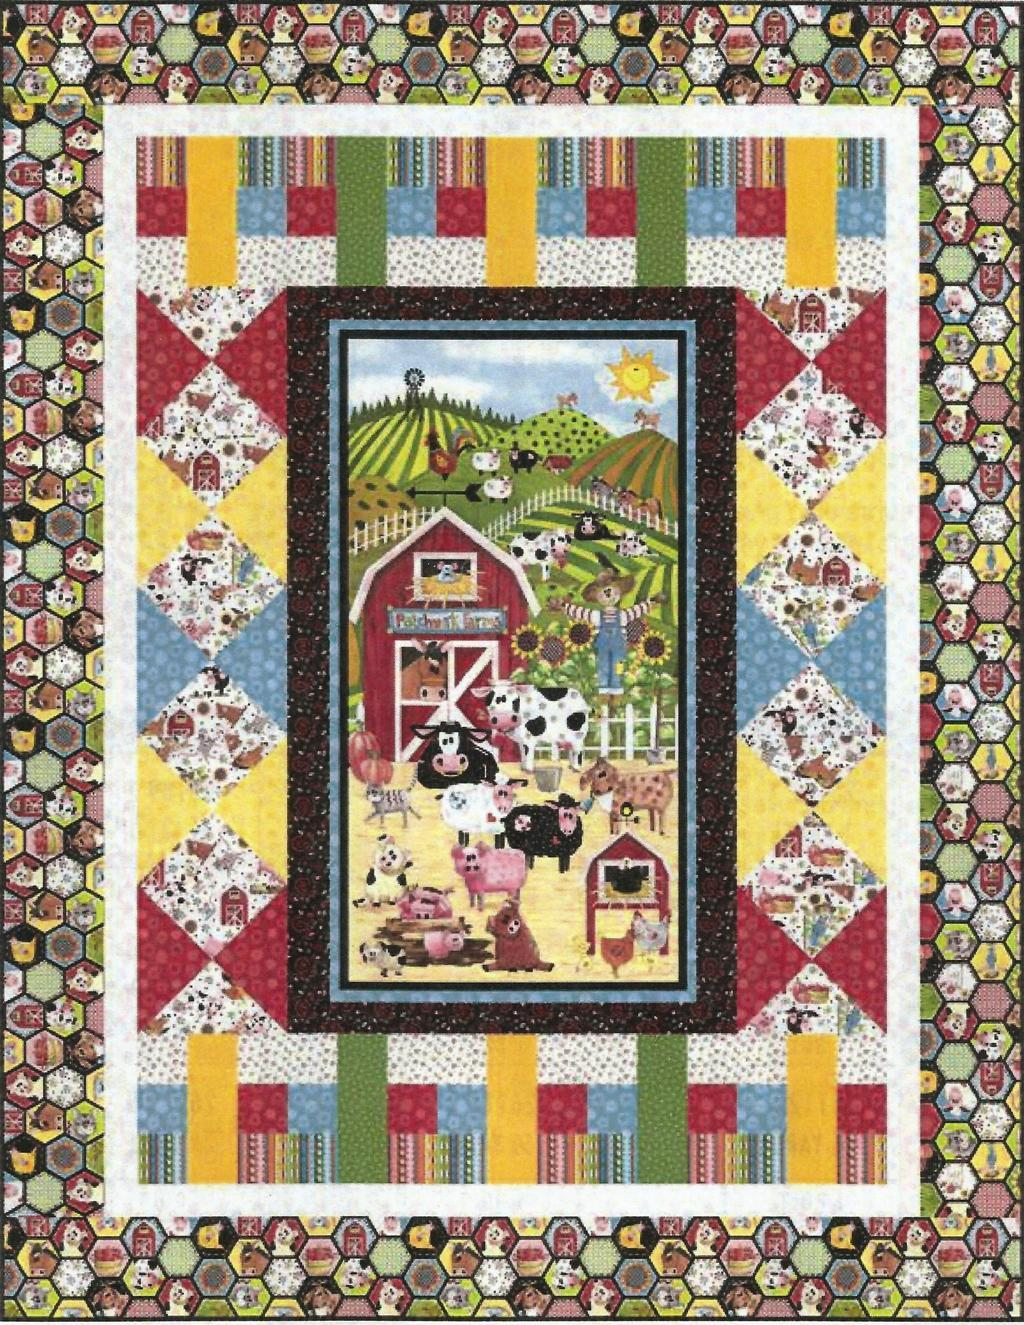 Patchwork farms kit has a farmyard panel showing cows, horses, pigs, sheep, chickens and a cat with a barn and mountains.